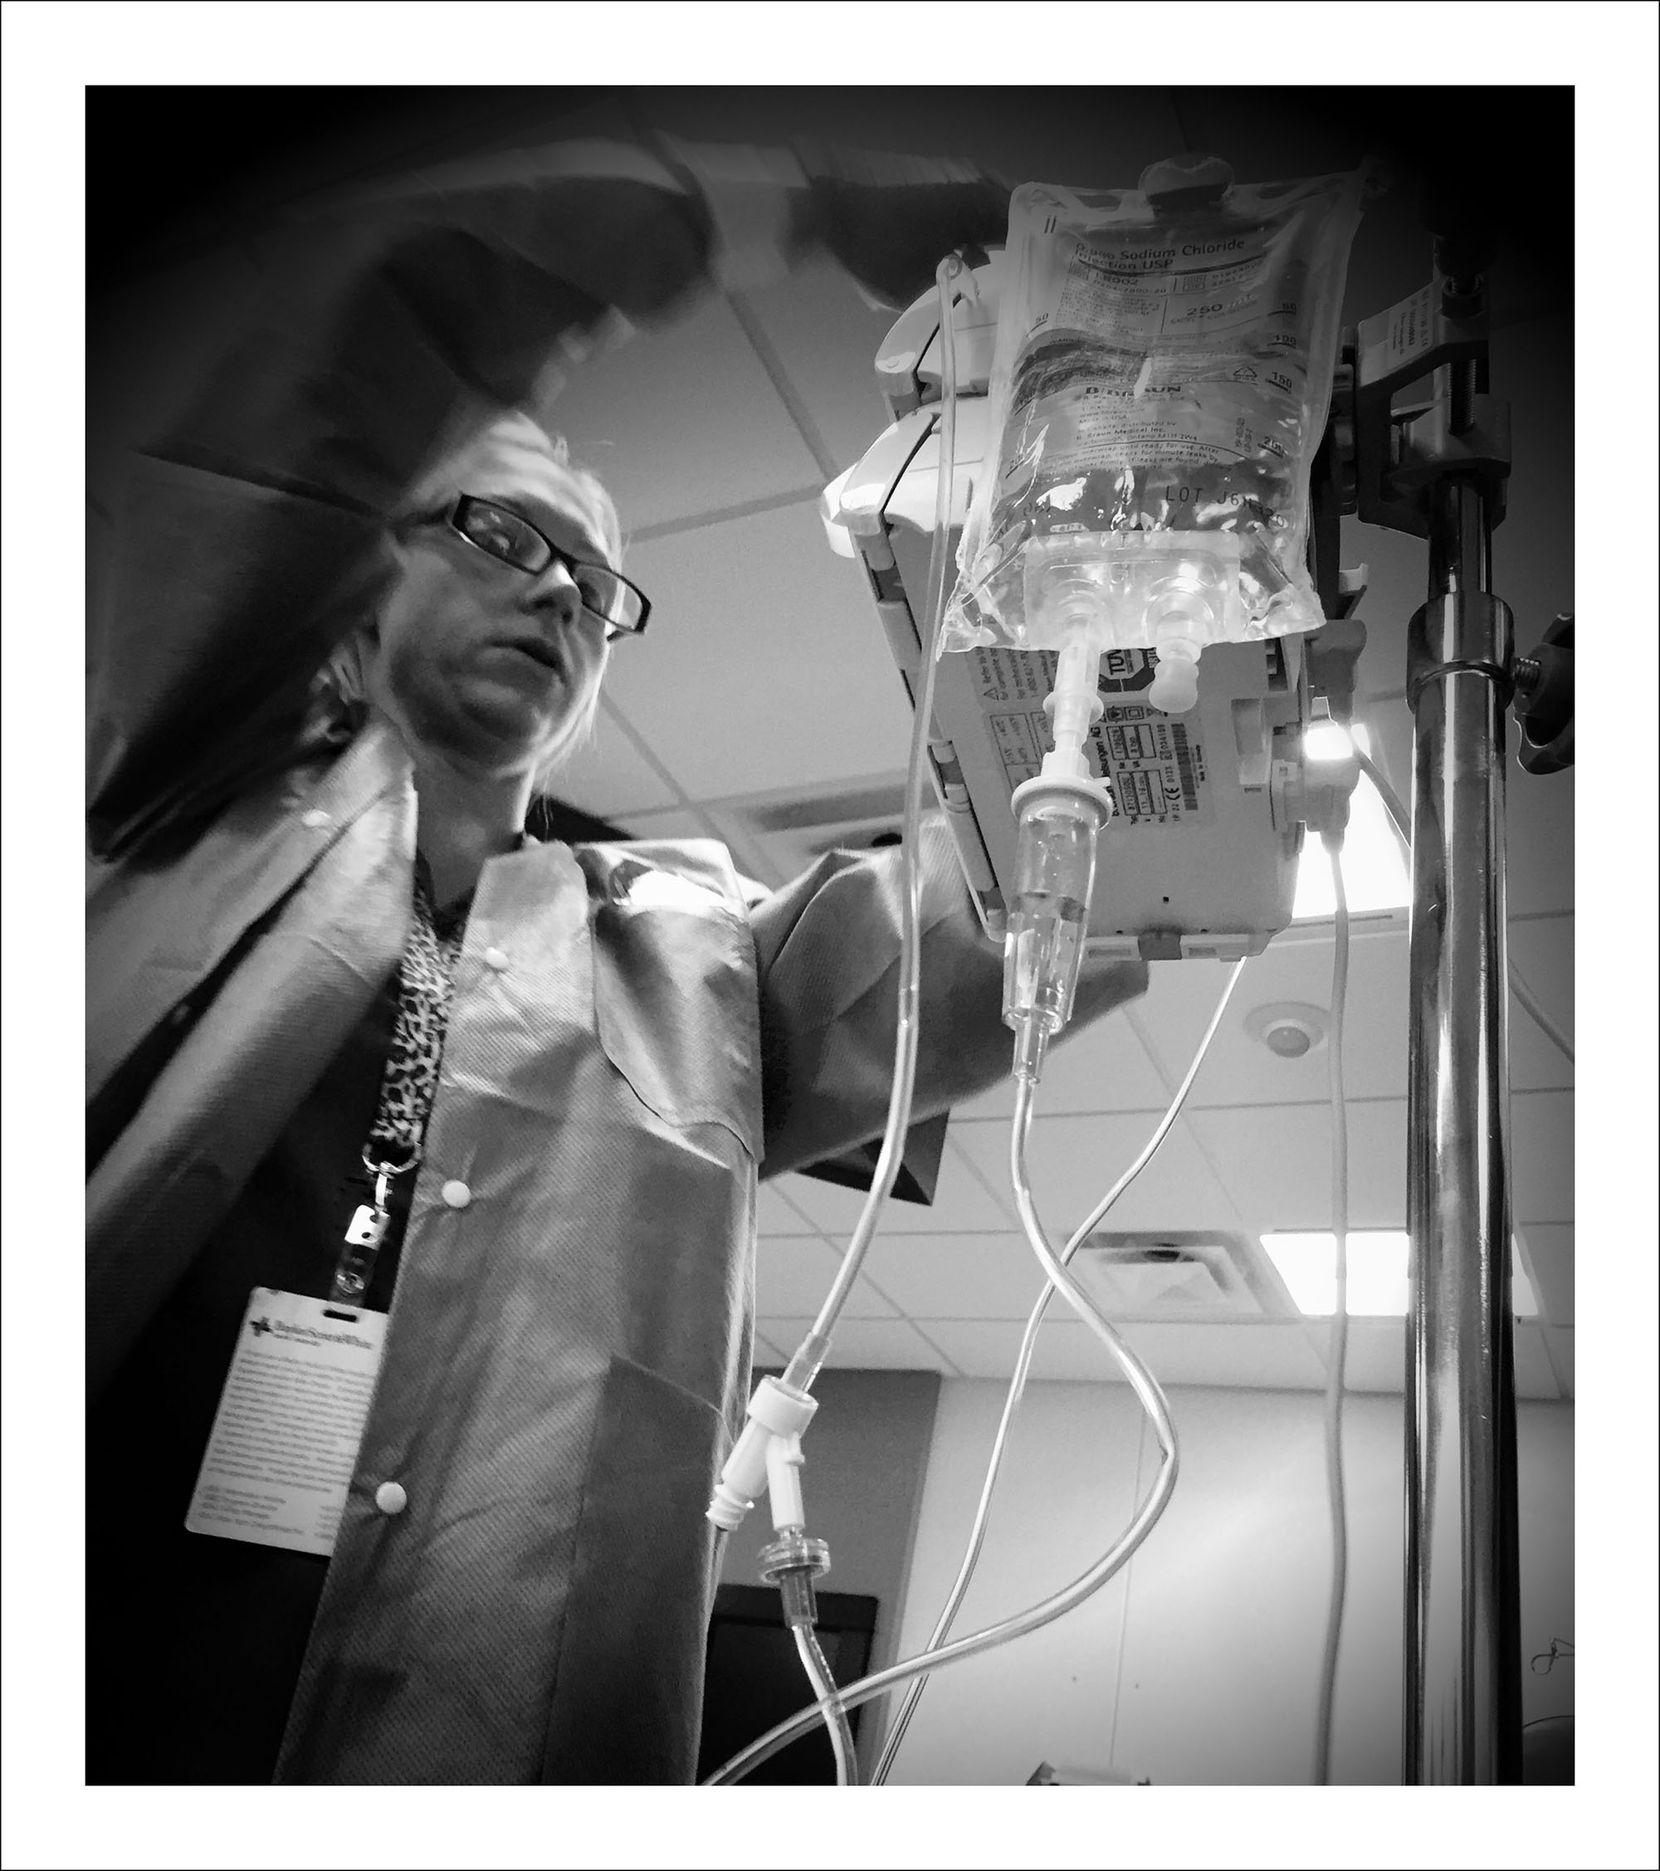 9/22/16 — Getting hooked up for the first day of chemotherapy.